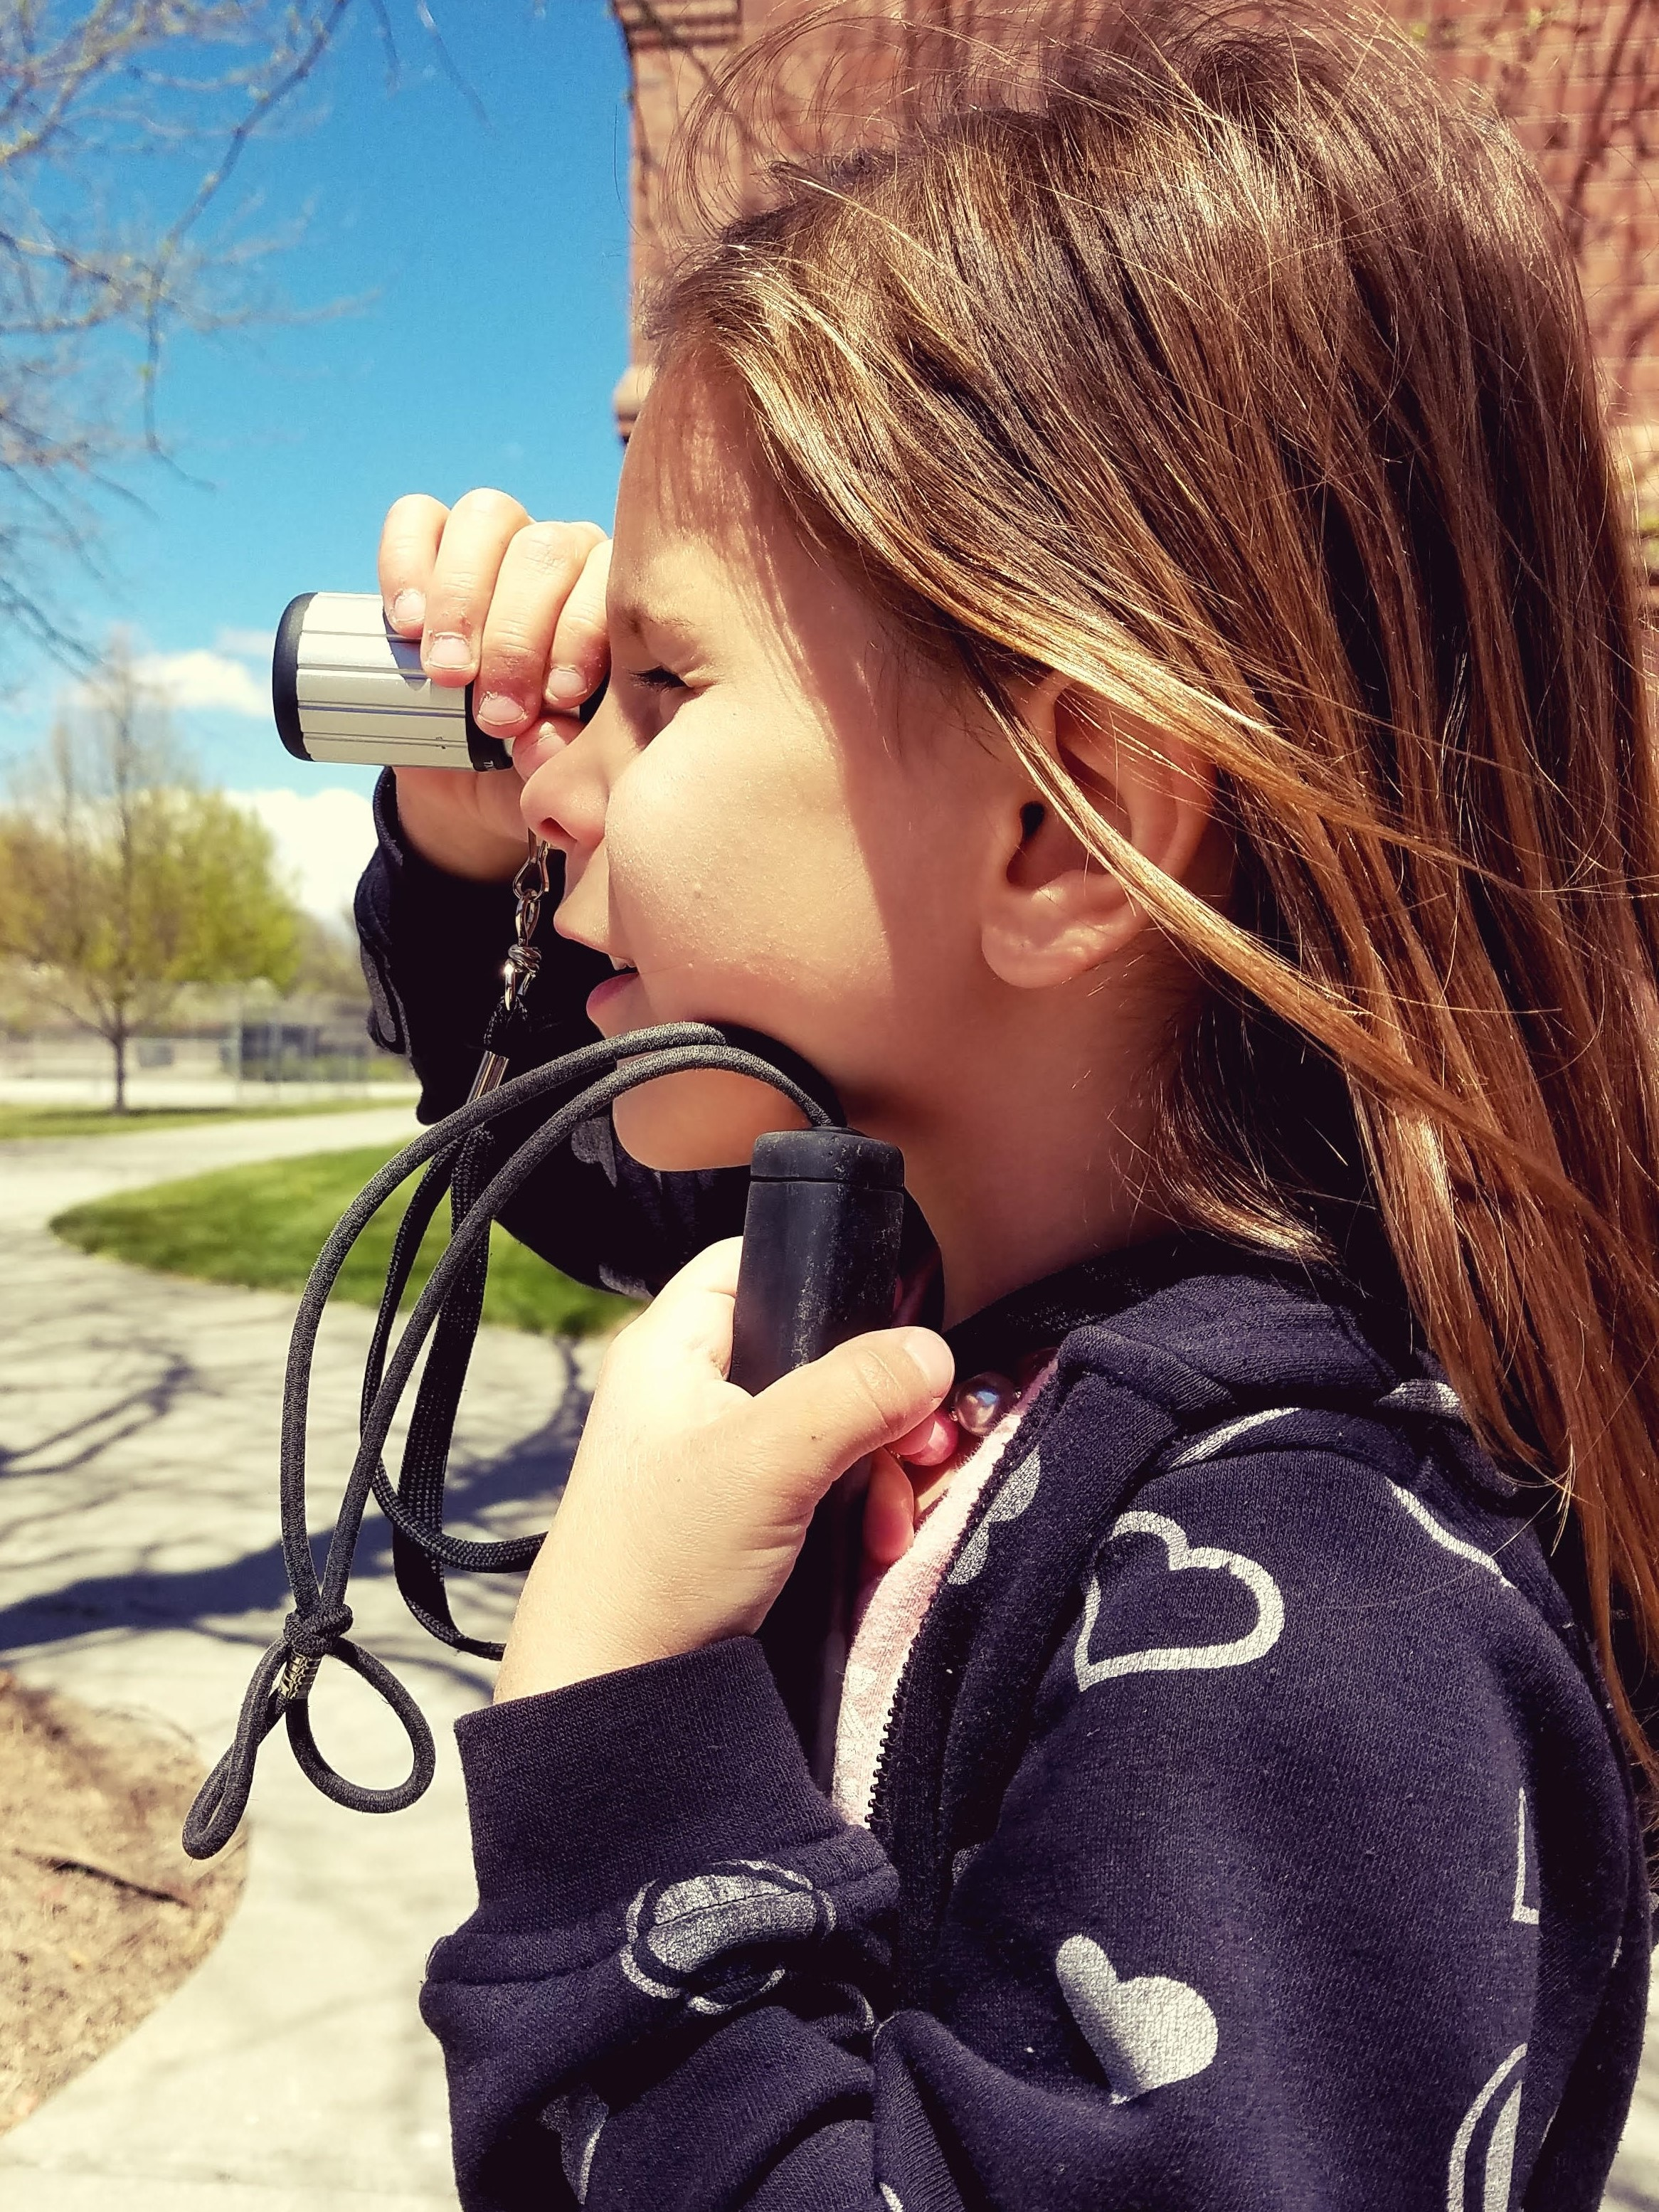 student using monocular device